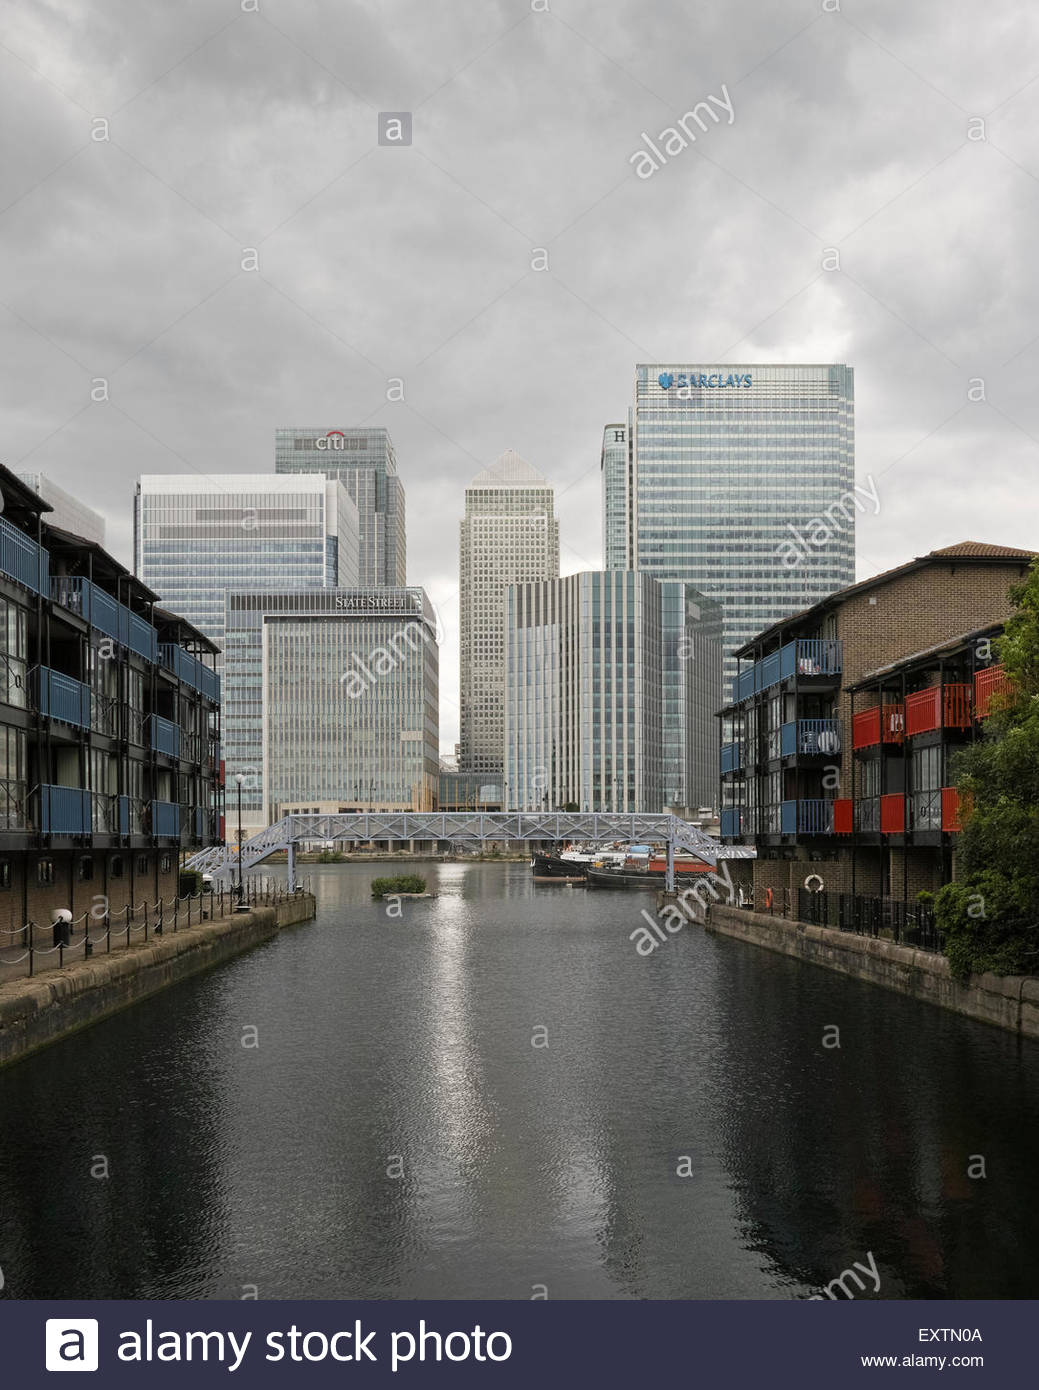 view-of-canary-wharf-estate-from-blackwa